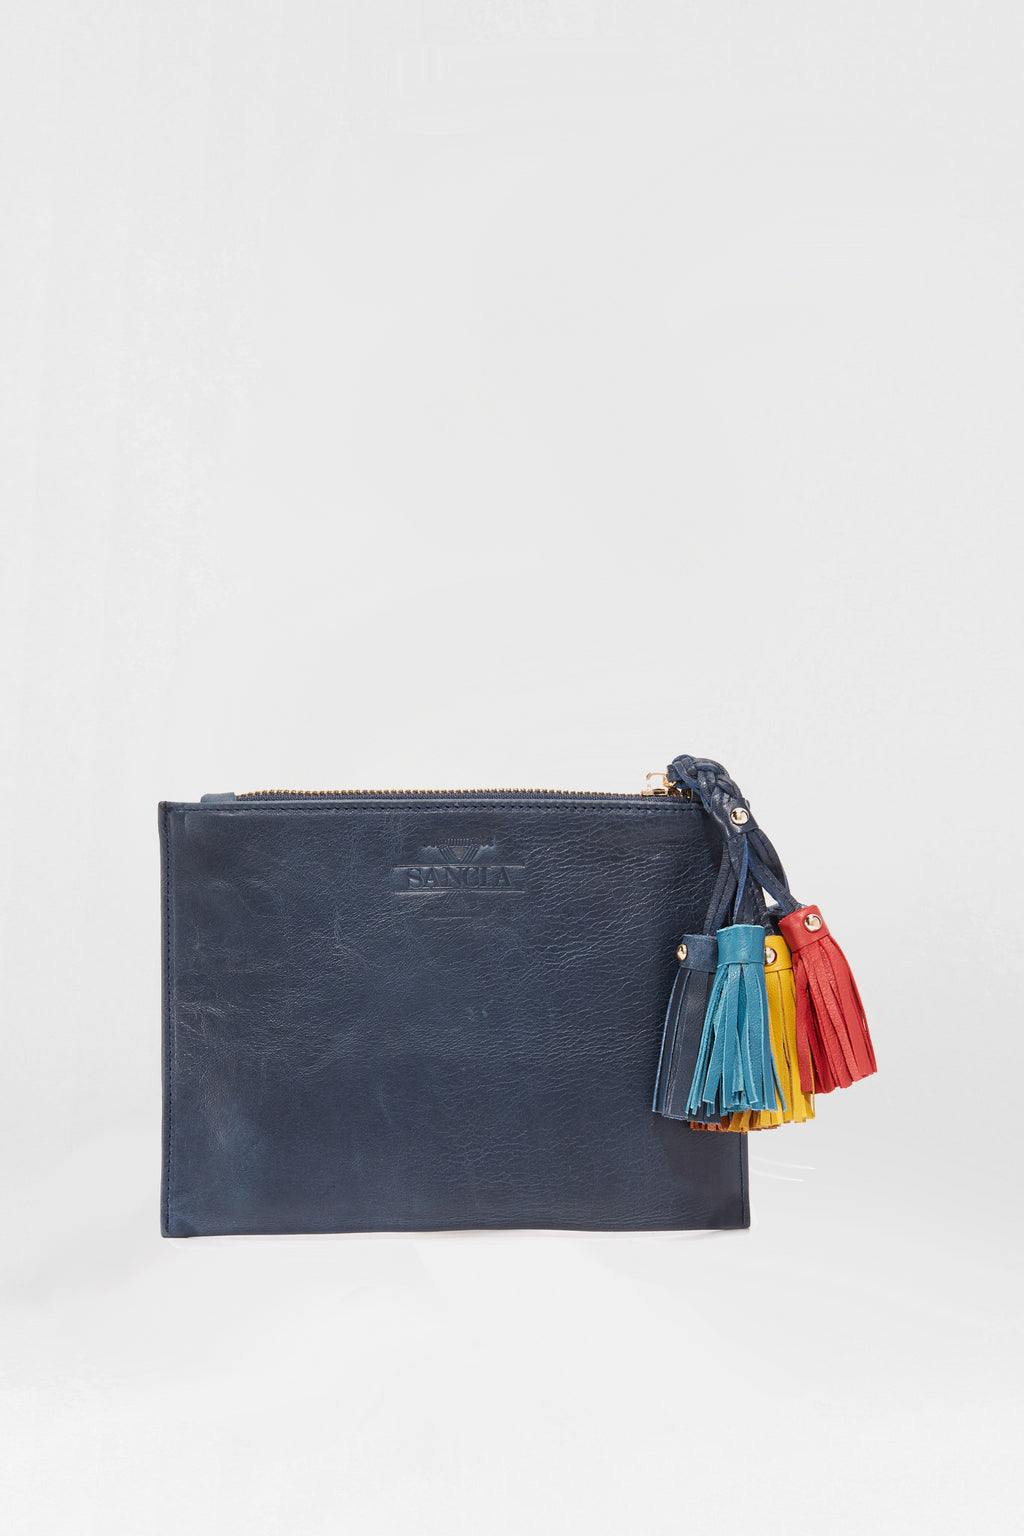 SANCIA - Daydream Clutch online at PAYA boutique